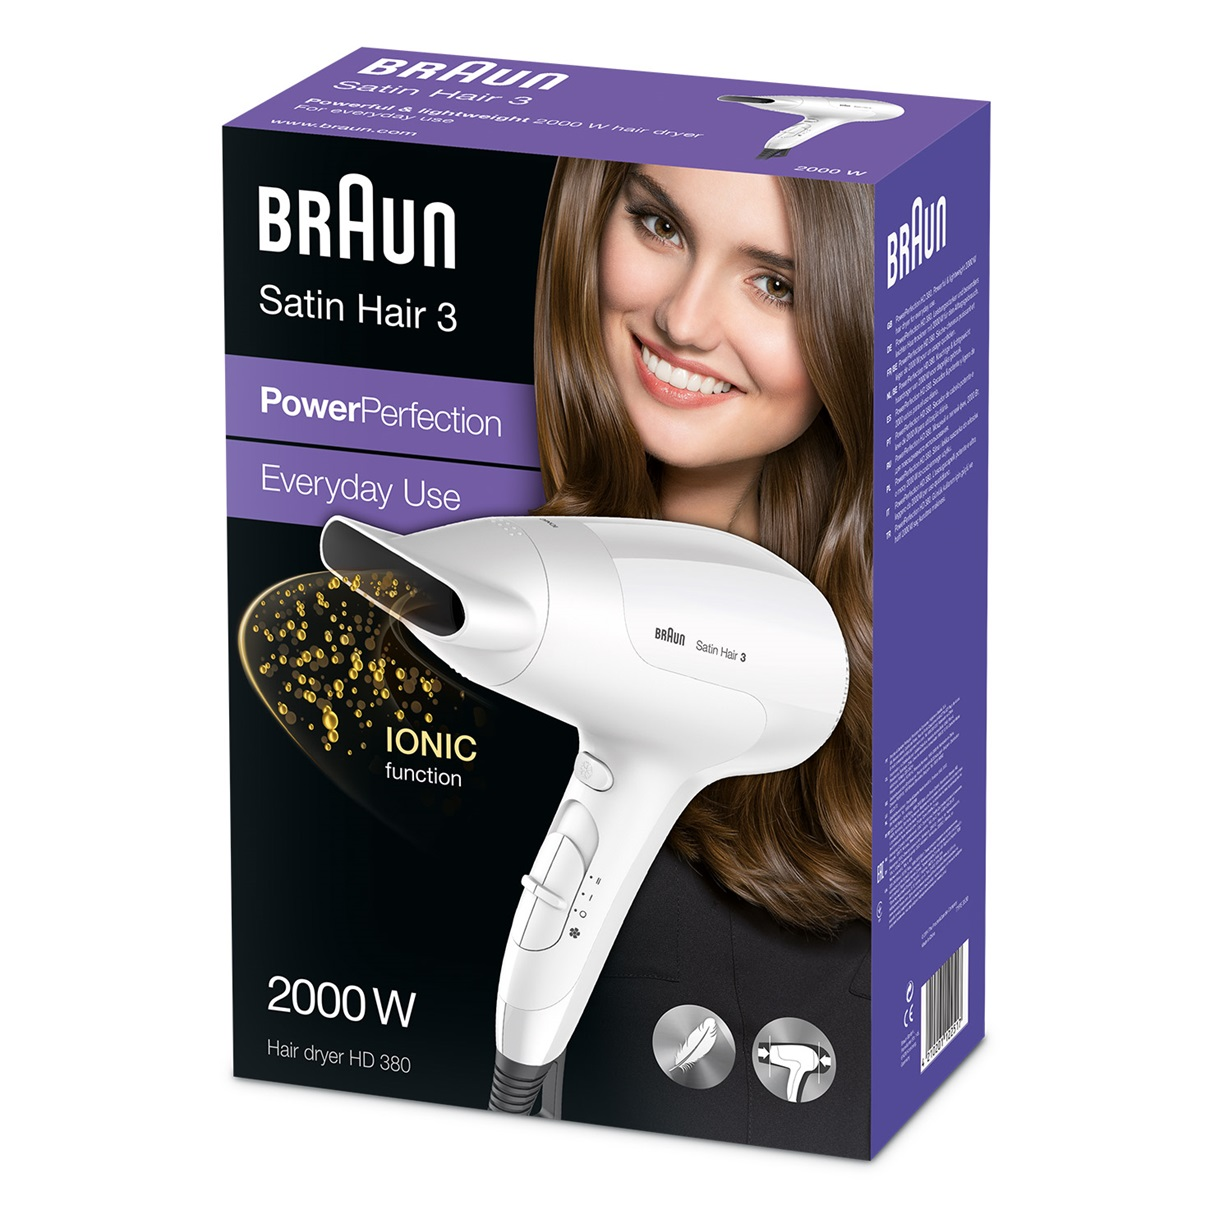 Uscător Braun Satin Hair 3 PowerPerfection HD380- Ionic.